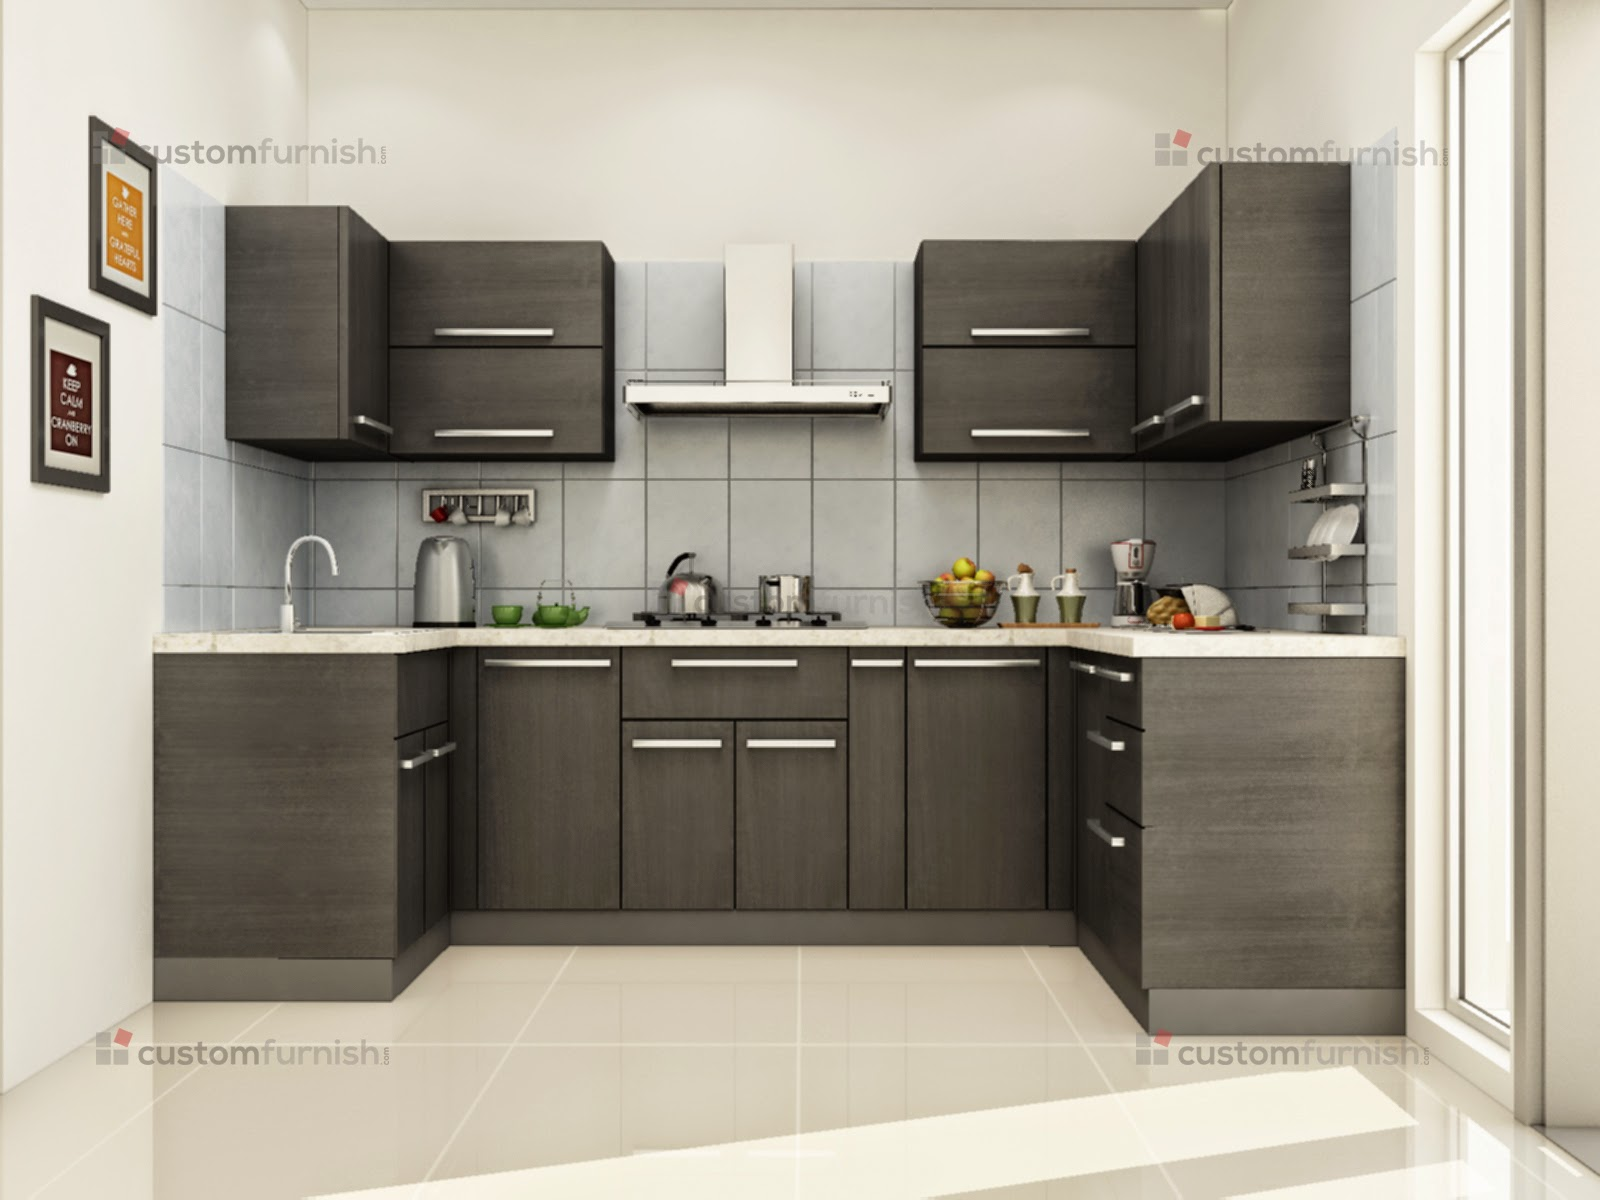 Indian kitchen design blog - Design Ideas For L Shaped Kitchens Interior Decor Blog